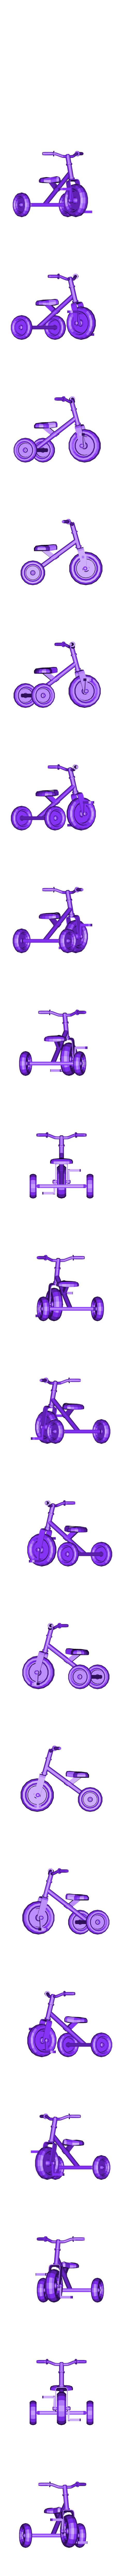 1351 Tricycle.obj Download free OBJ file Tricycle • 3D printer template, Colorful3D